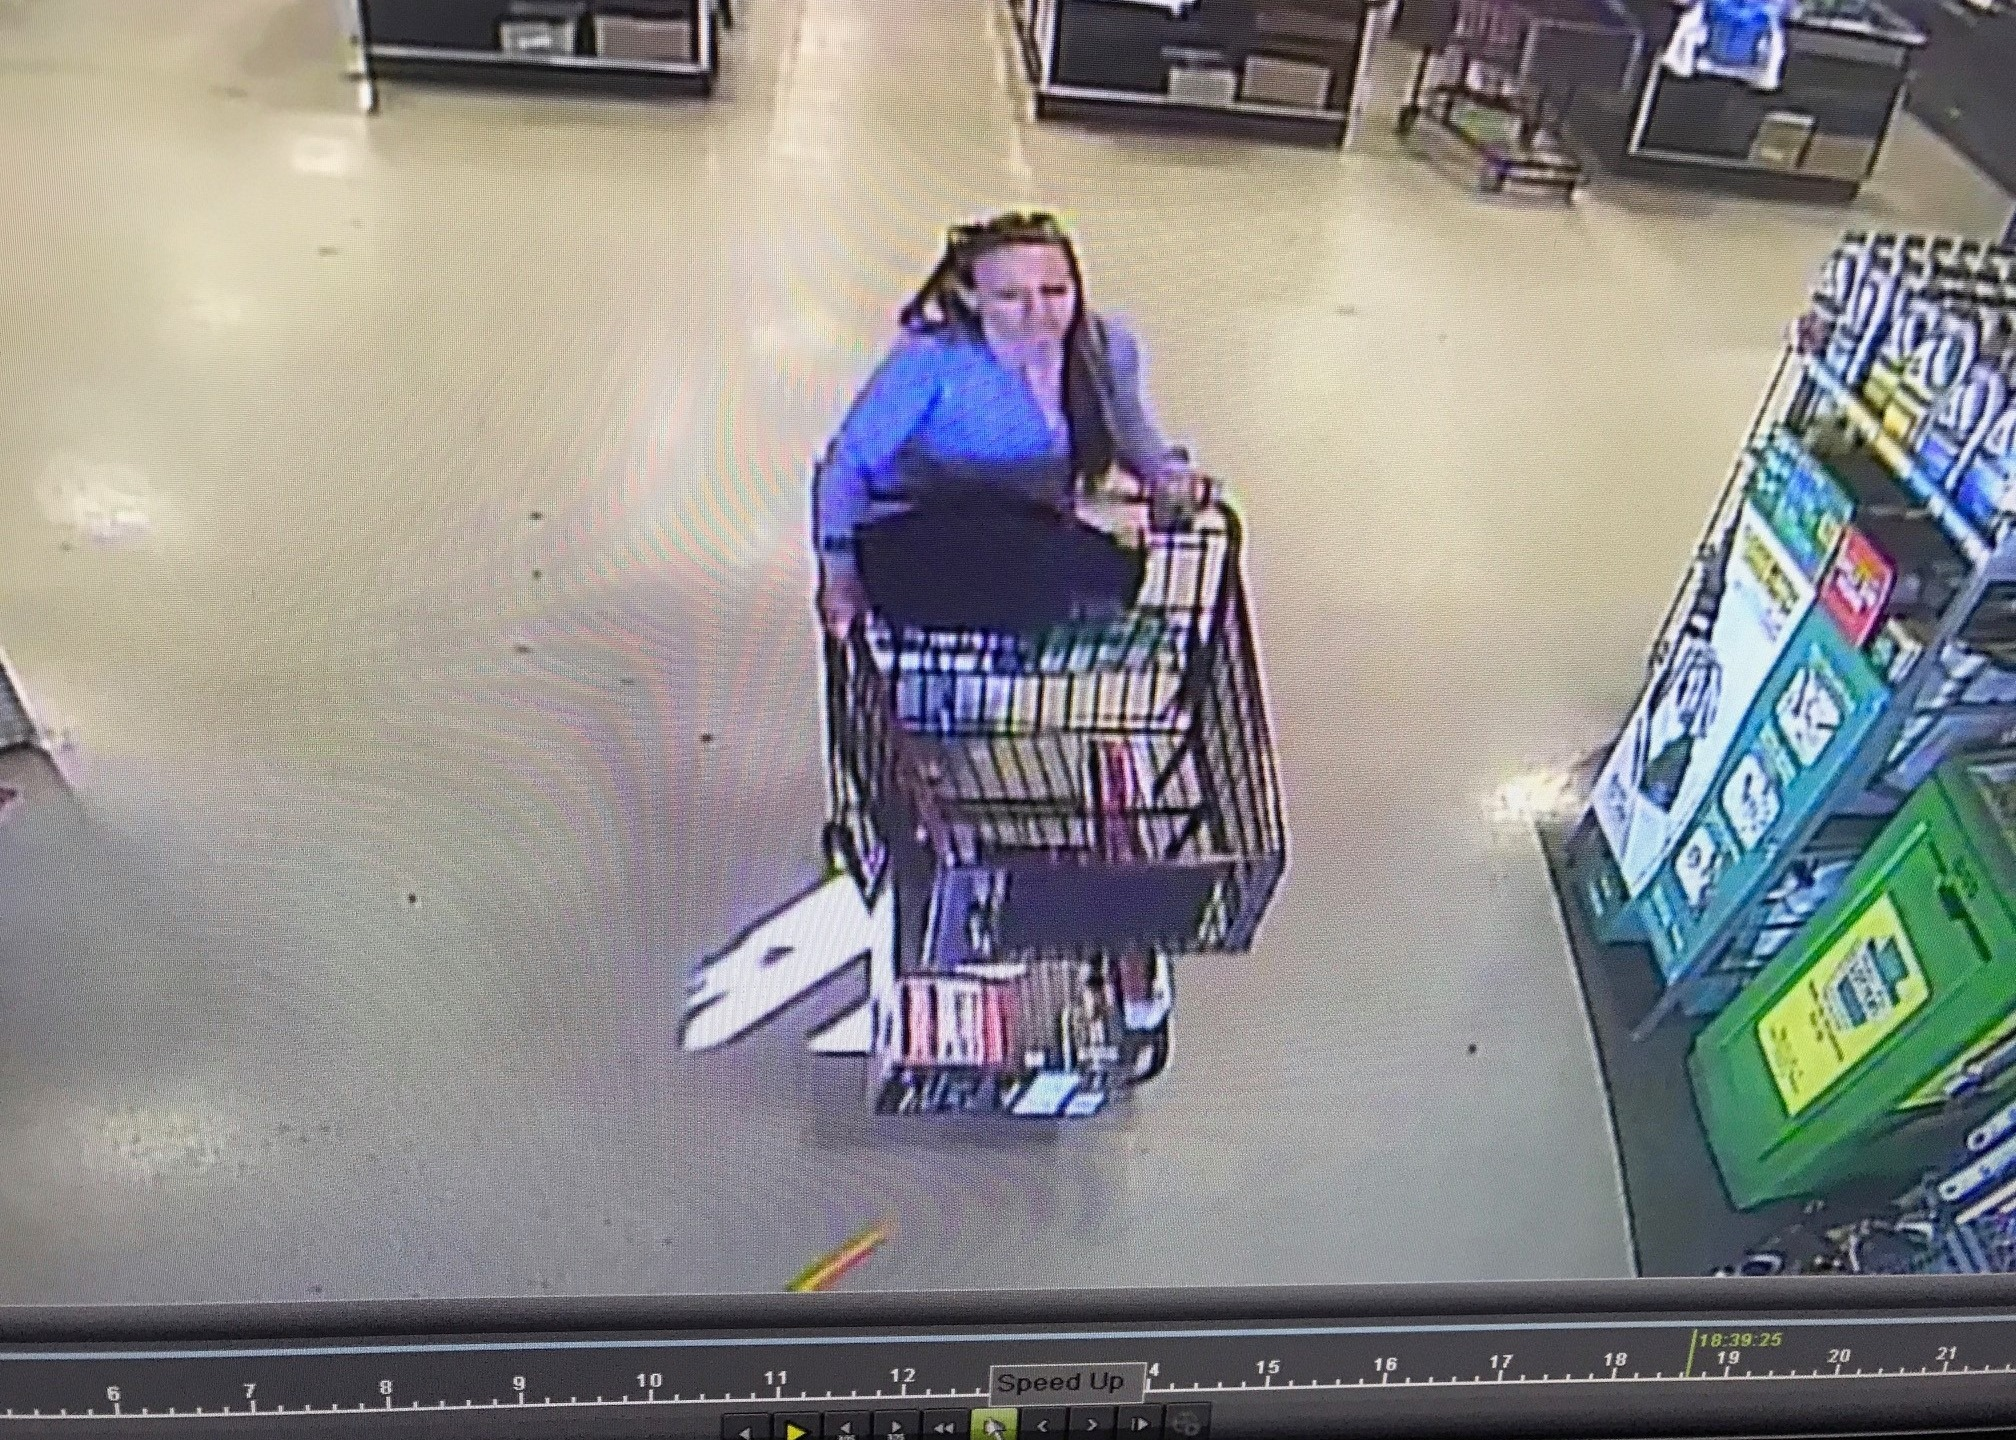 Richland Township Police attempt to identify retail theft